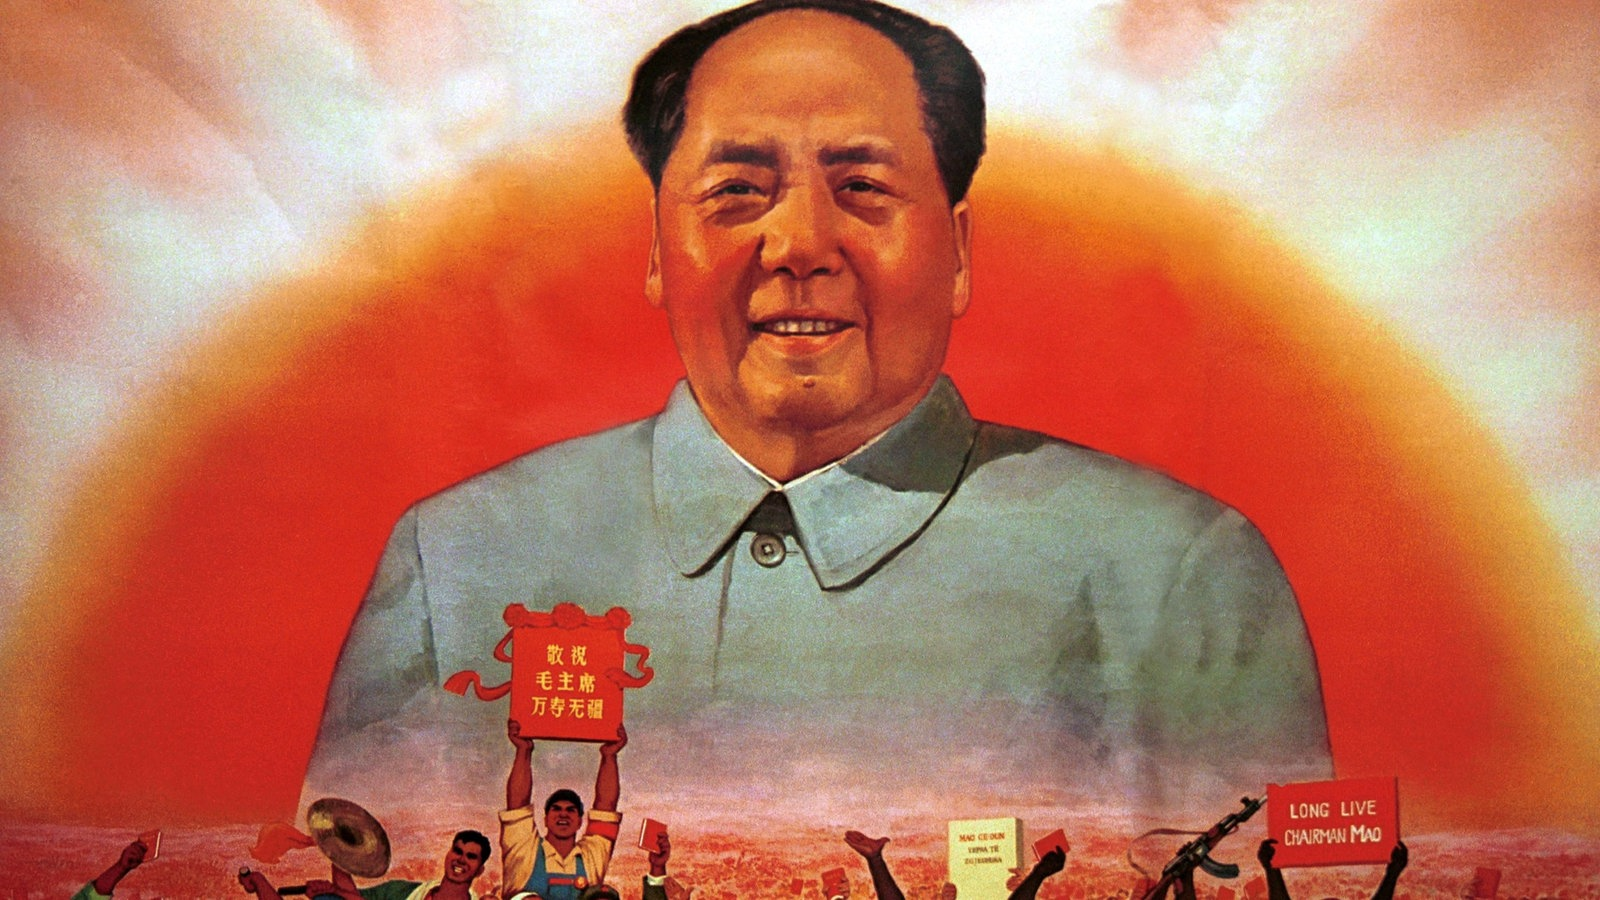 mao zedong Mao zedong (26 december 1893 – 9 september 1976) was a chinese communist leader he was chairman of communist party of china (cpc) from its establishment in 1949 until his death in 1976.